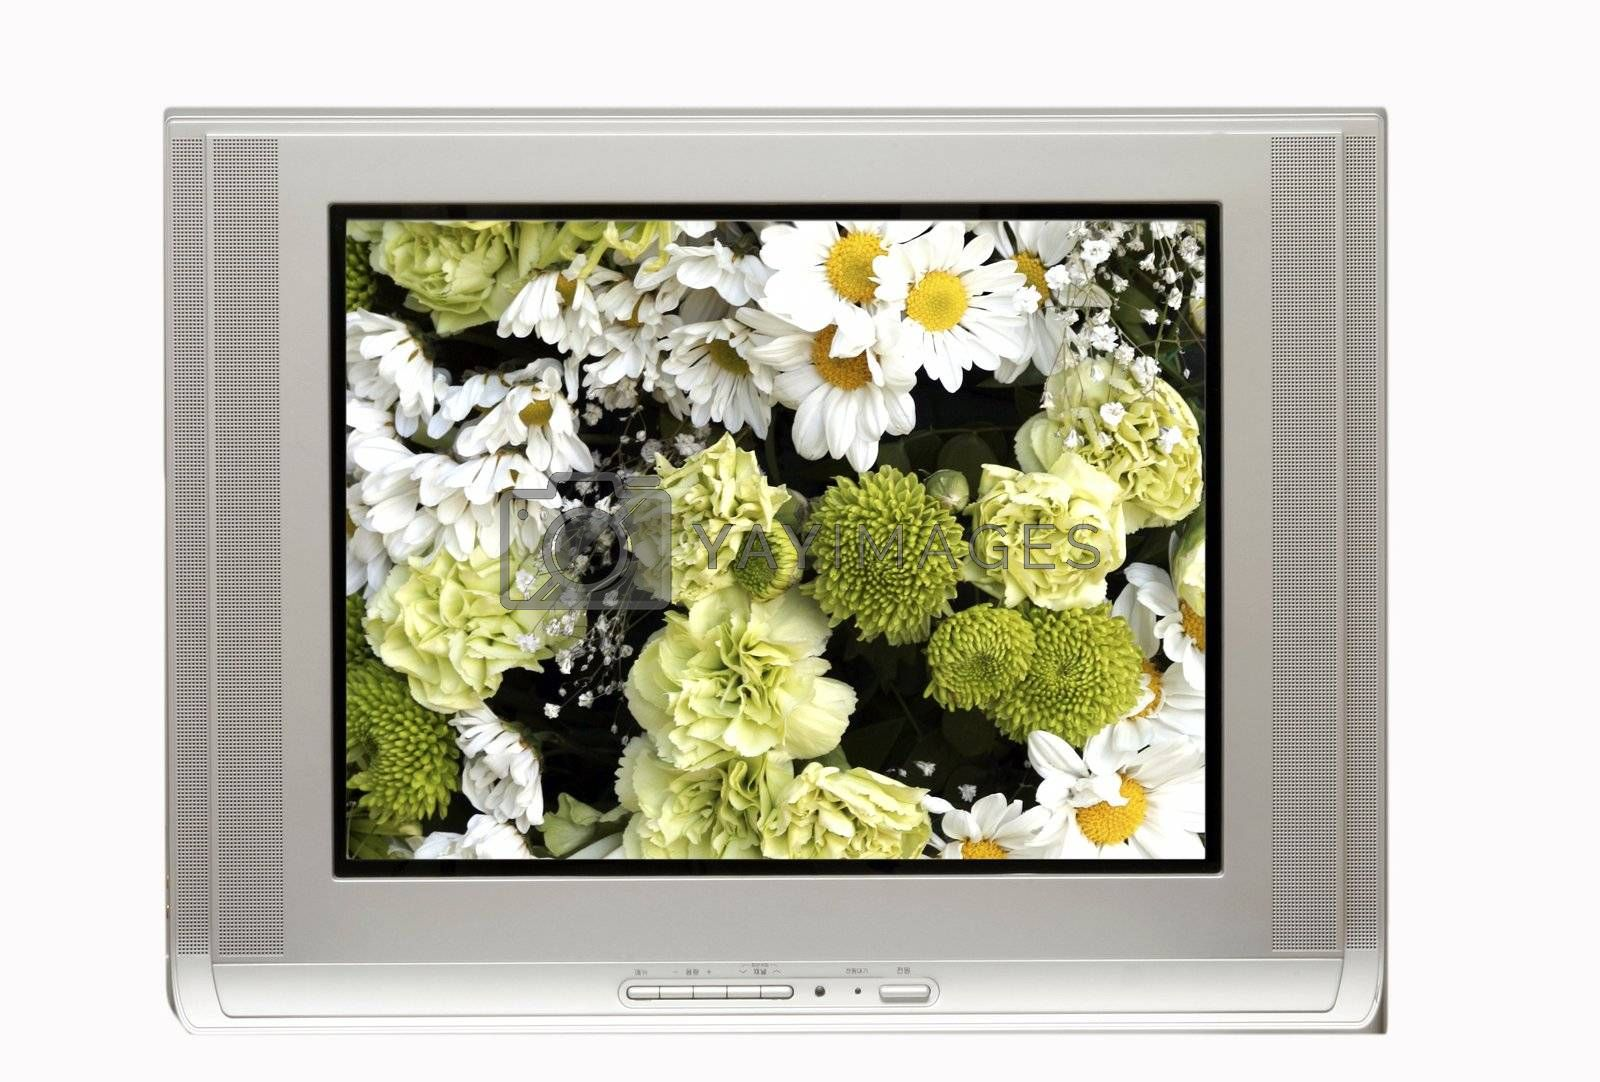 TV and White flowers by sacatani